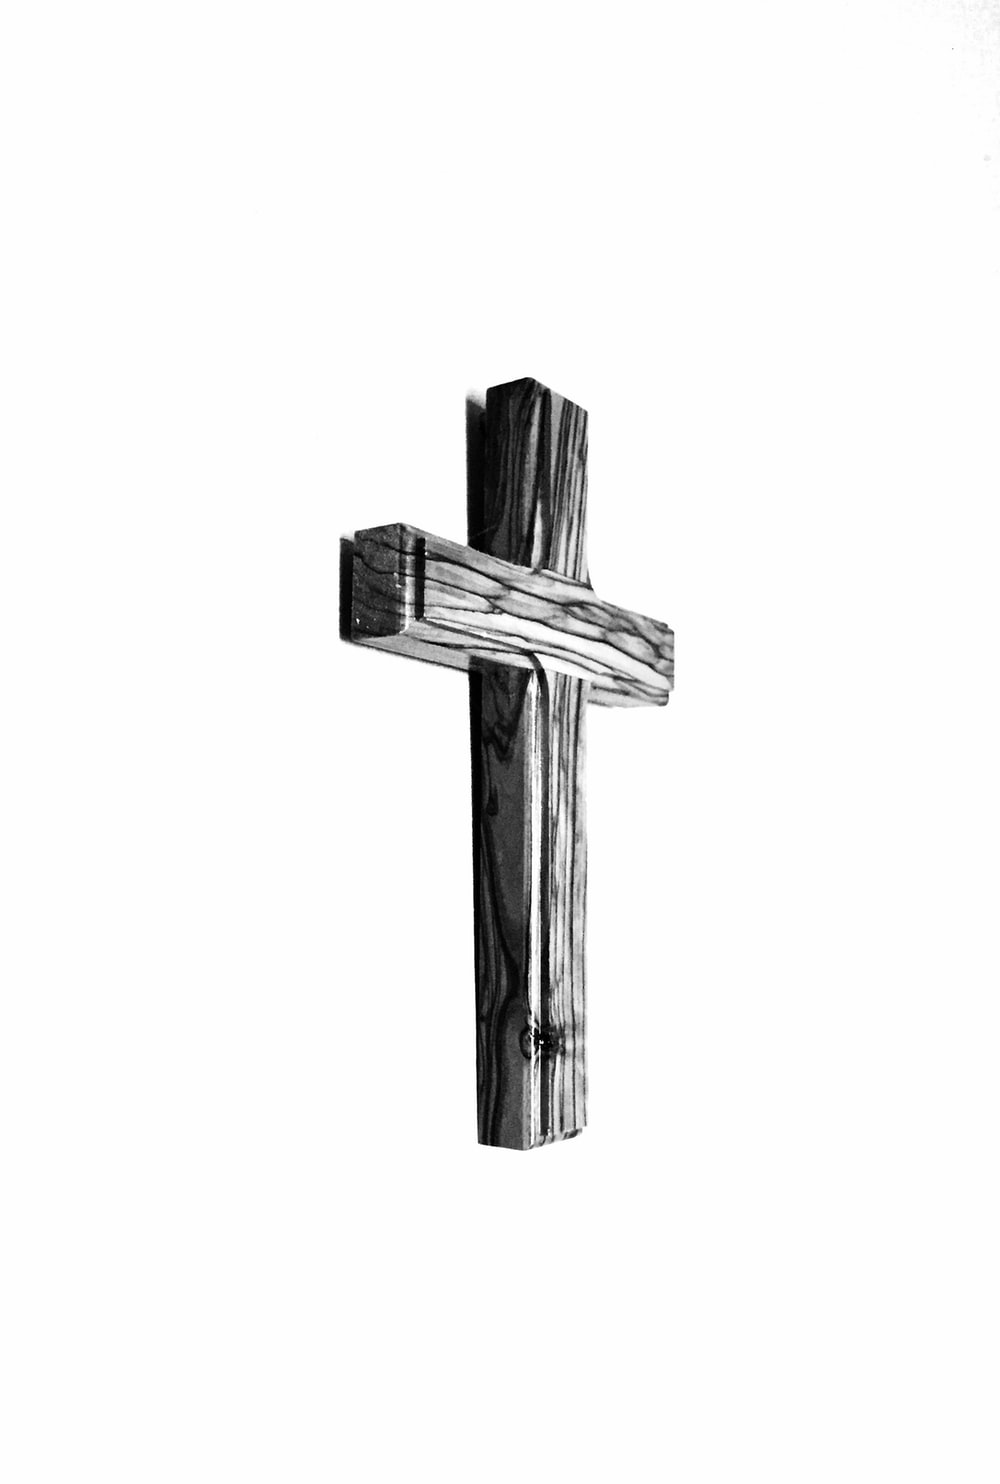 Cross Pictures Hd Download Free Images On Unsplash